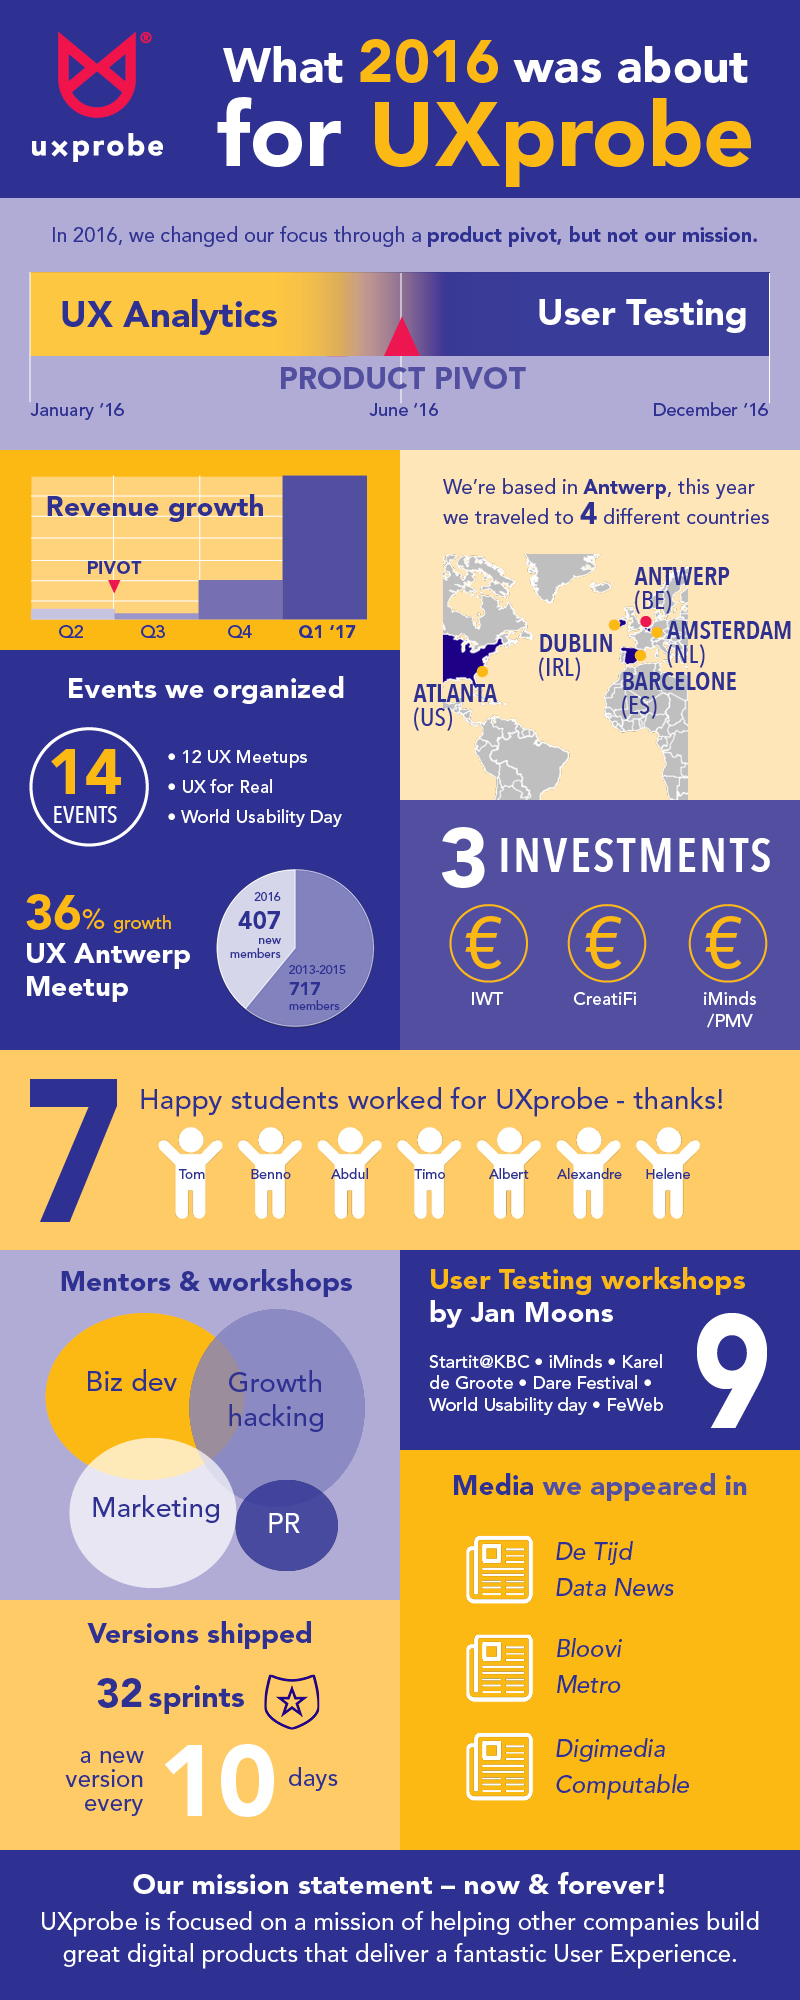 UXprobe 2016 year in review infographic